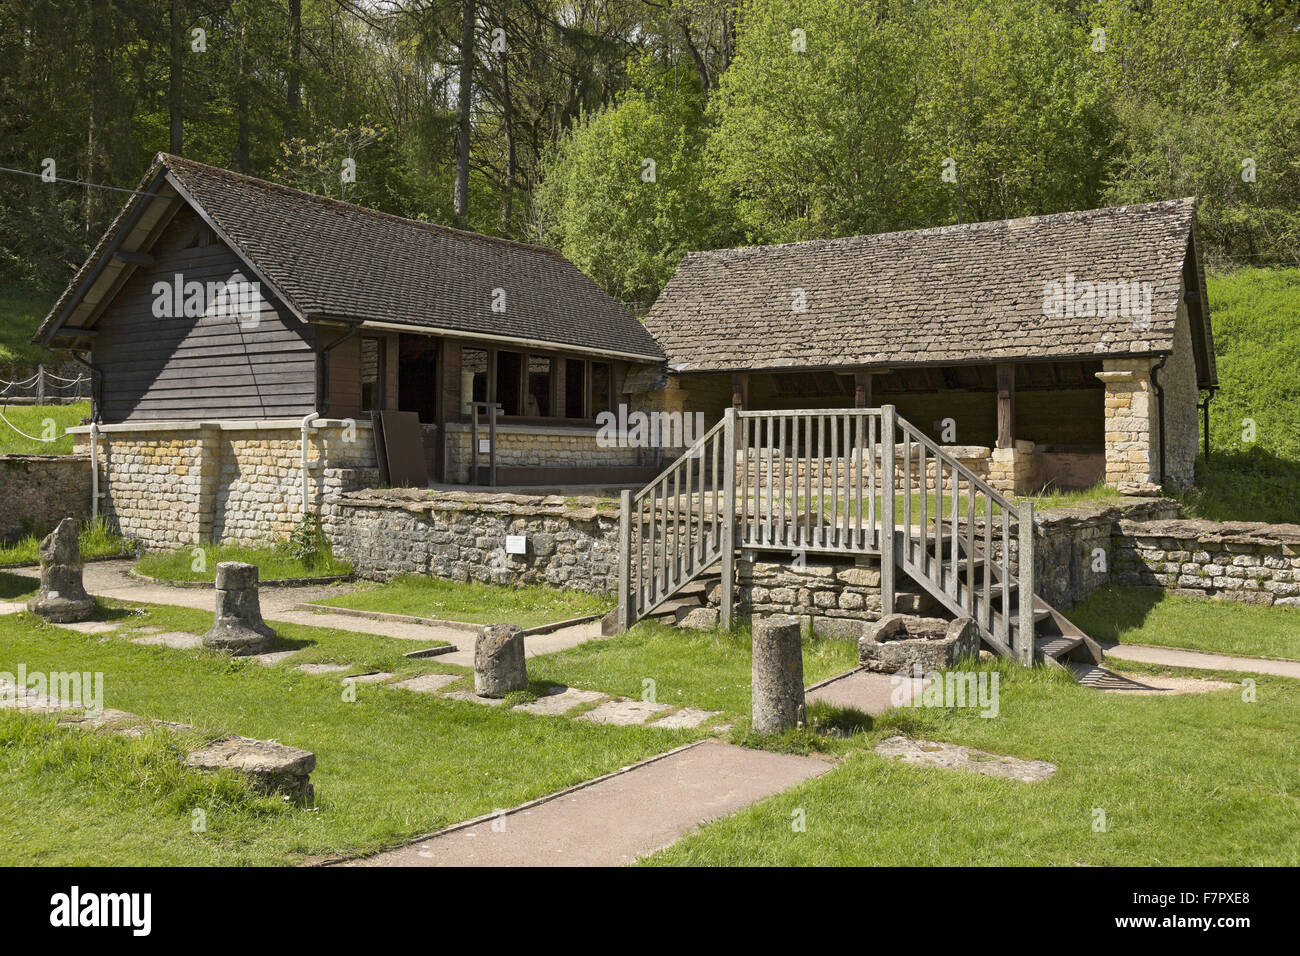 Modern buildings at chedworth roman villa gloucestershire chedworth roman villa was one of the grandest villas in roman britain and is one of the